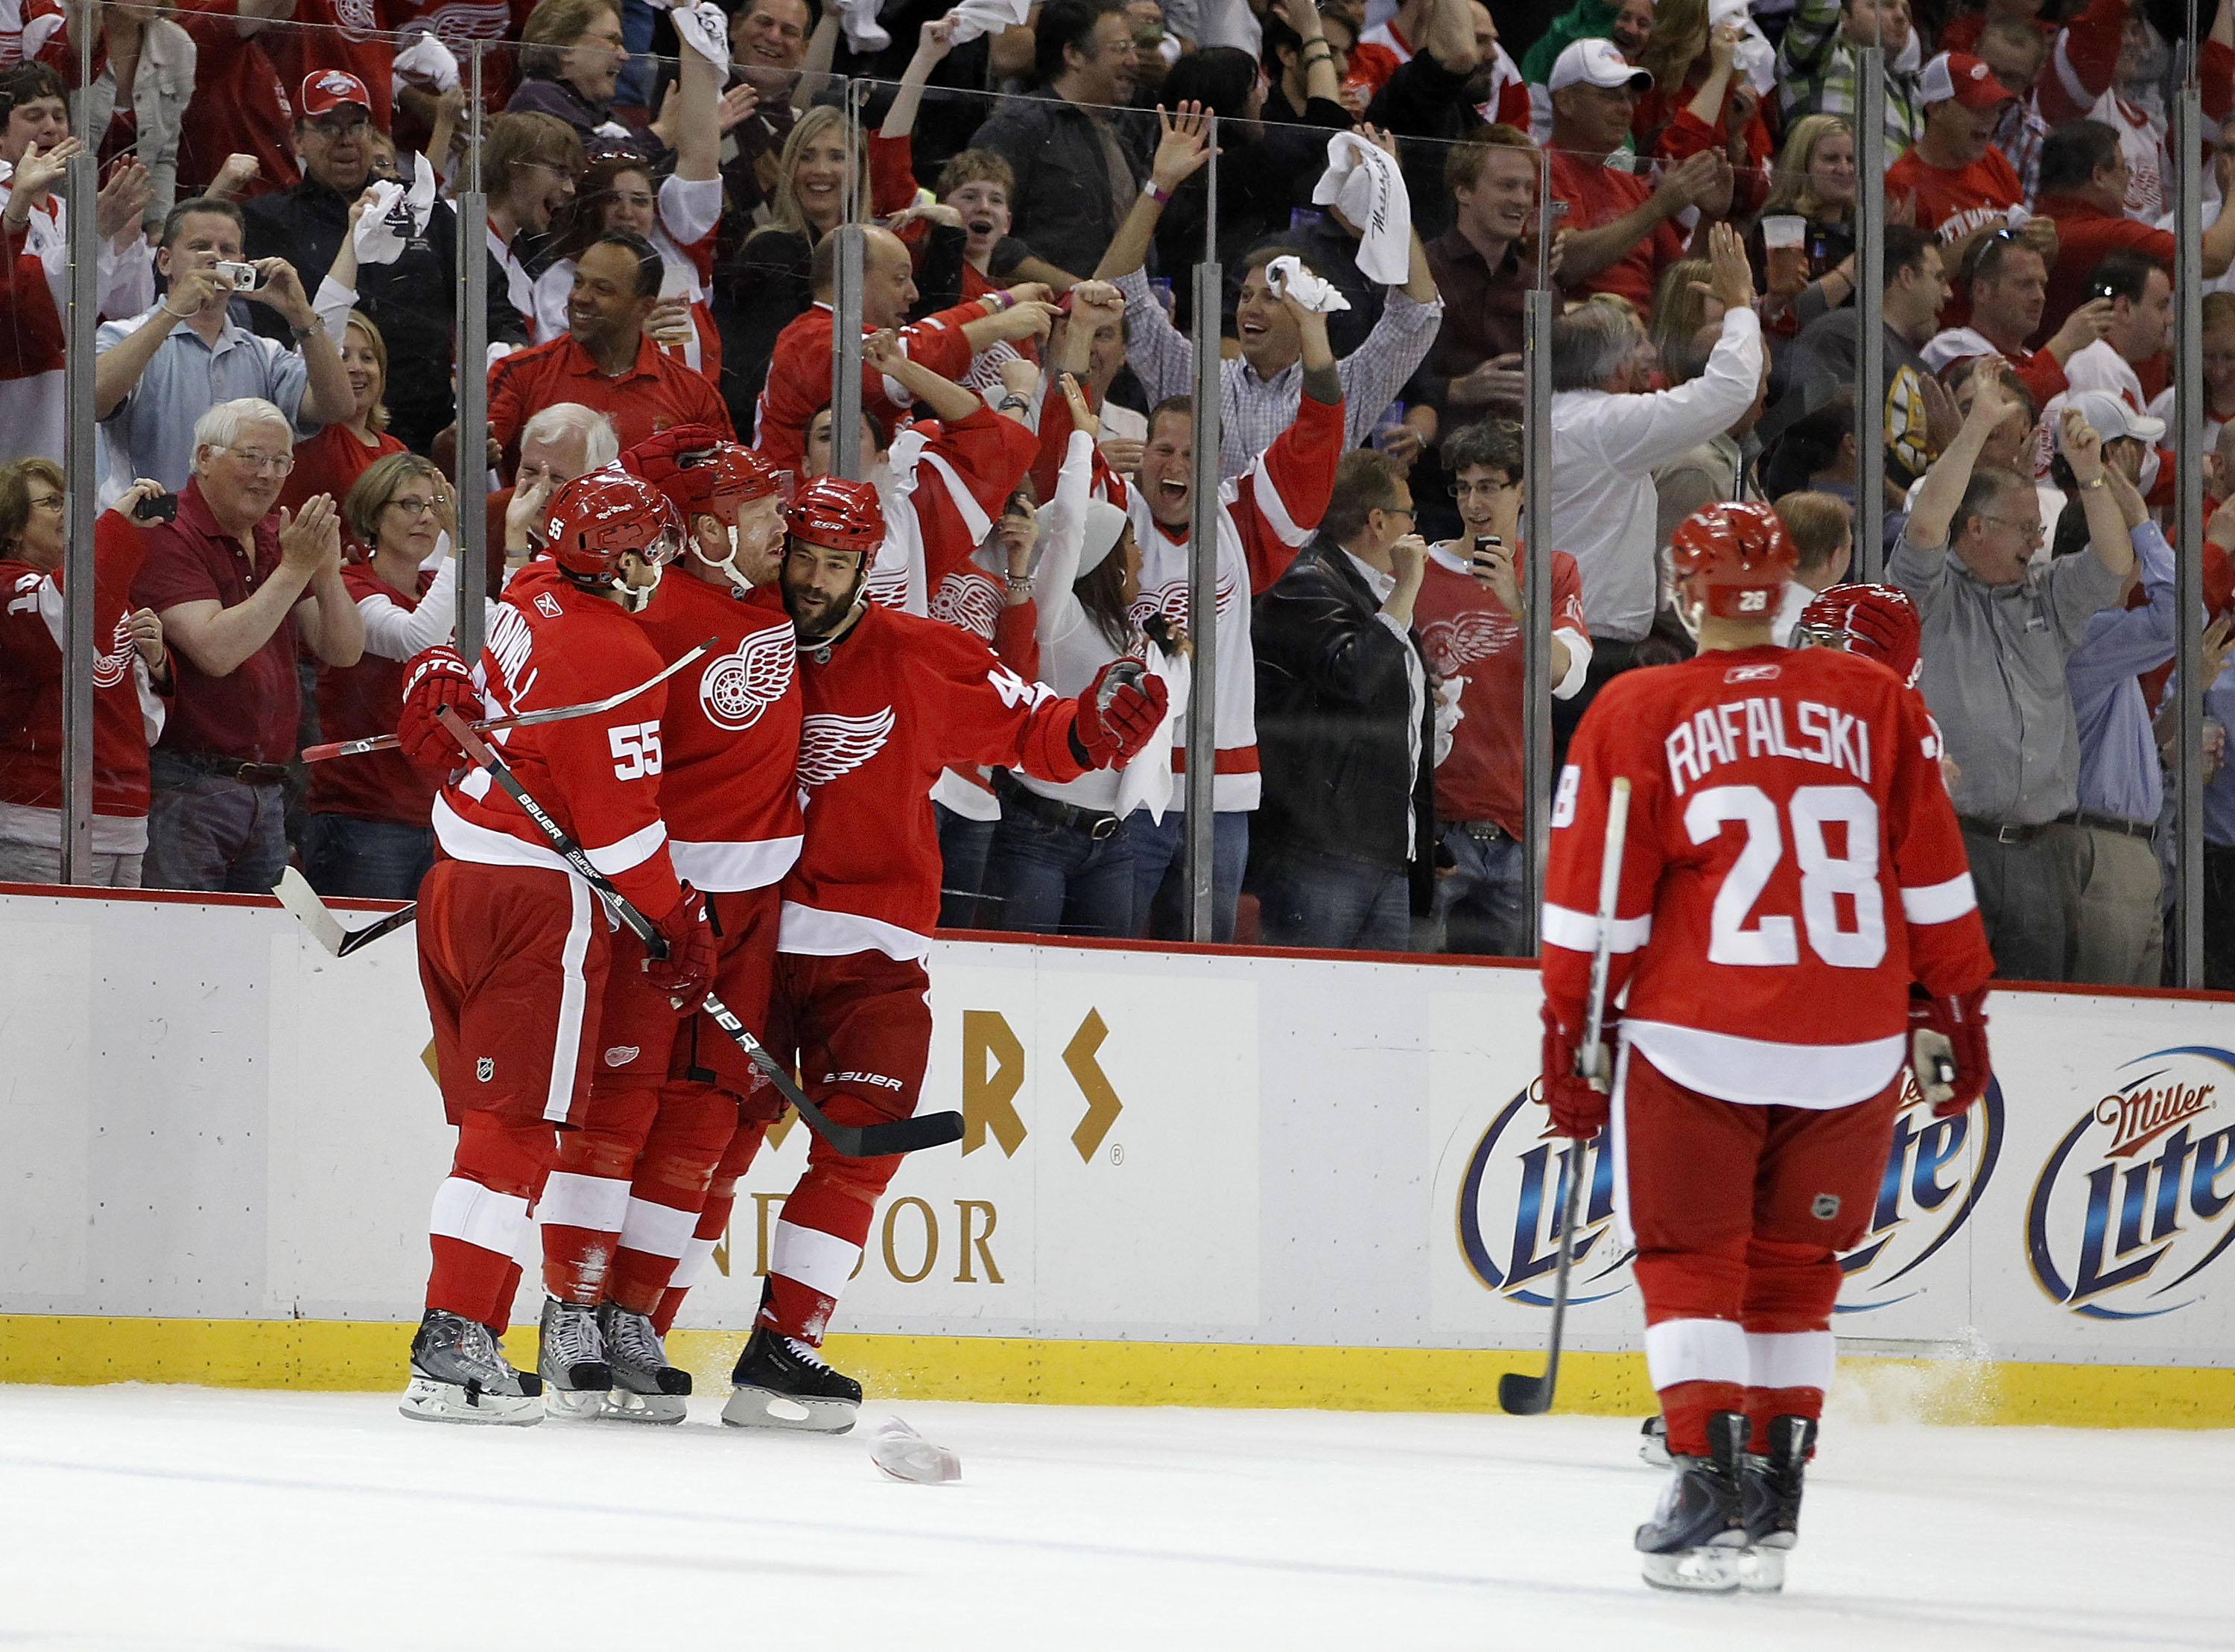 DETROIT - MAY 06: Johan Franzen #93 of the Detroit Red Wings celebrates his third goal of the first period with Niklas Kronwall #55, Todd Bertuzzi #44 and Brian Rafalski #28 while playing the San Jose Sharks in Game Four of the Western Conference Semifina